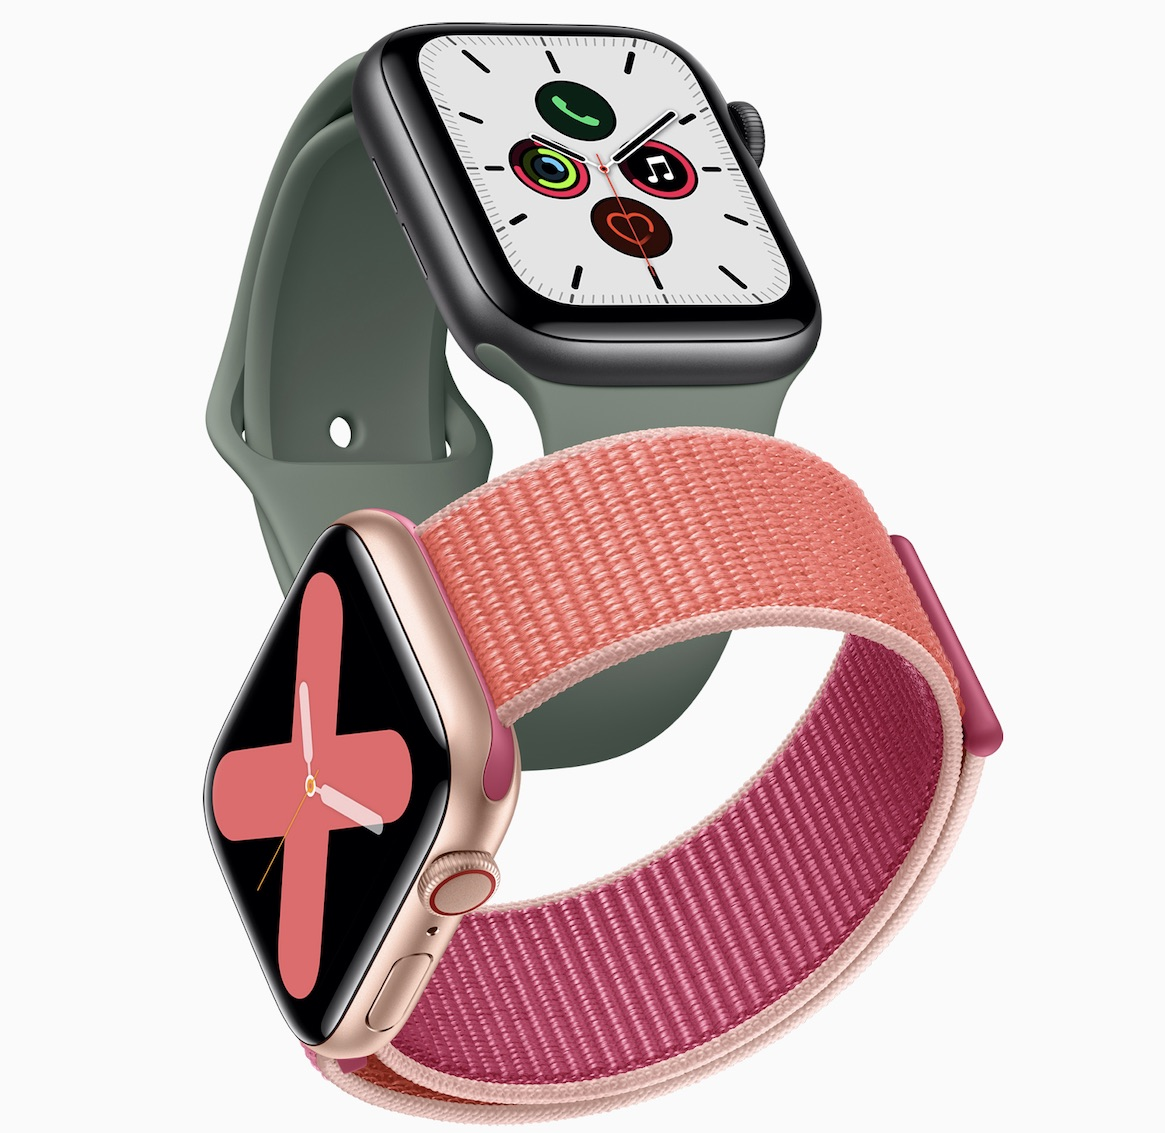 Apple Watch Series 5 Hands On: Always-On Display is Great, but Otherwise Not Much of an Upgrade